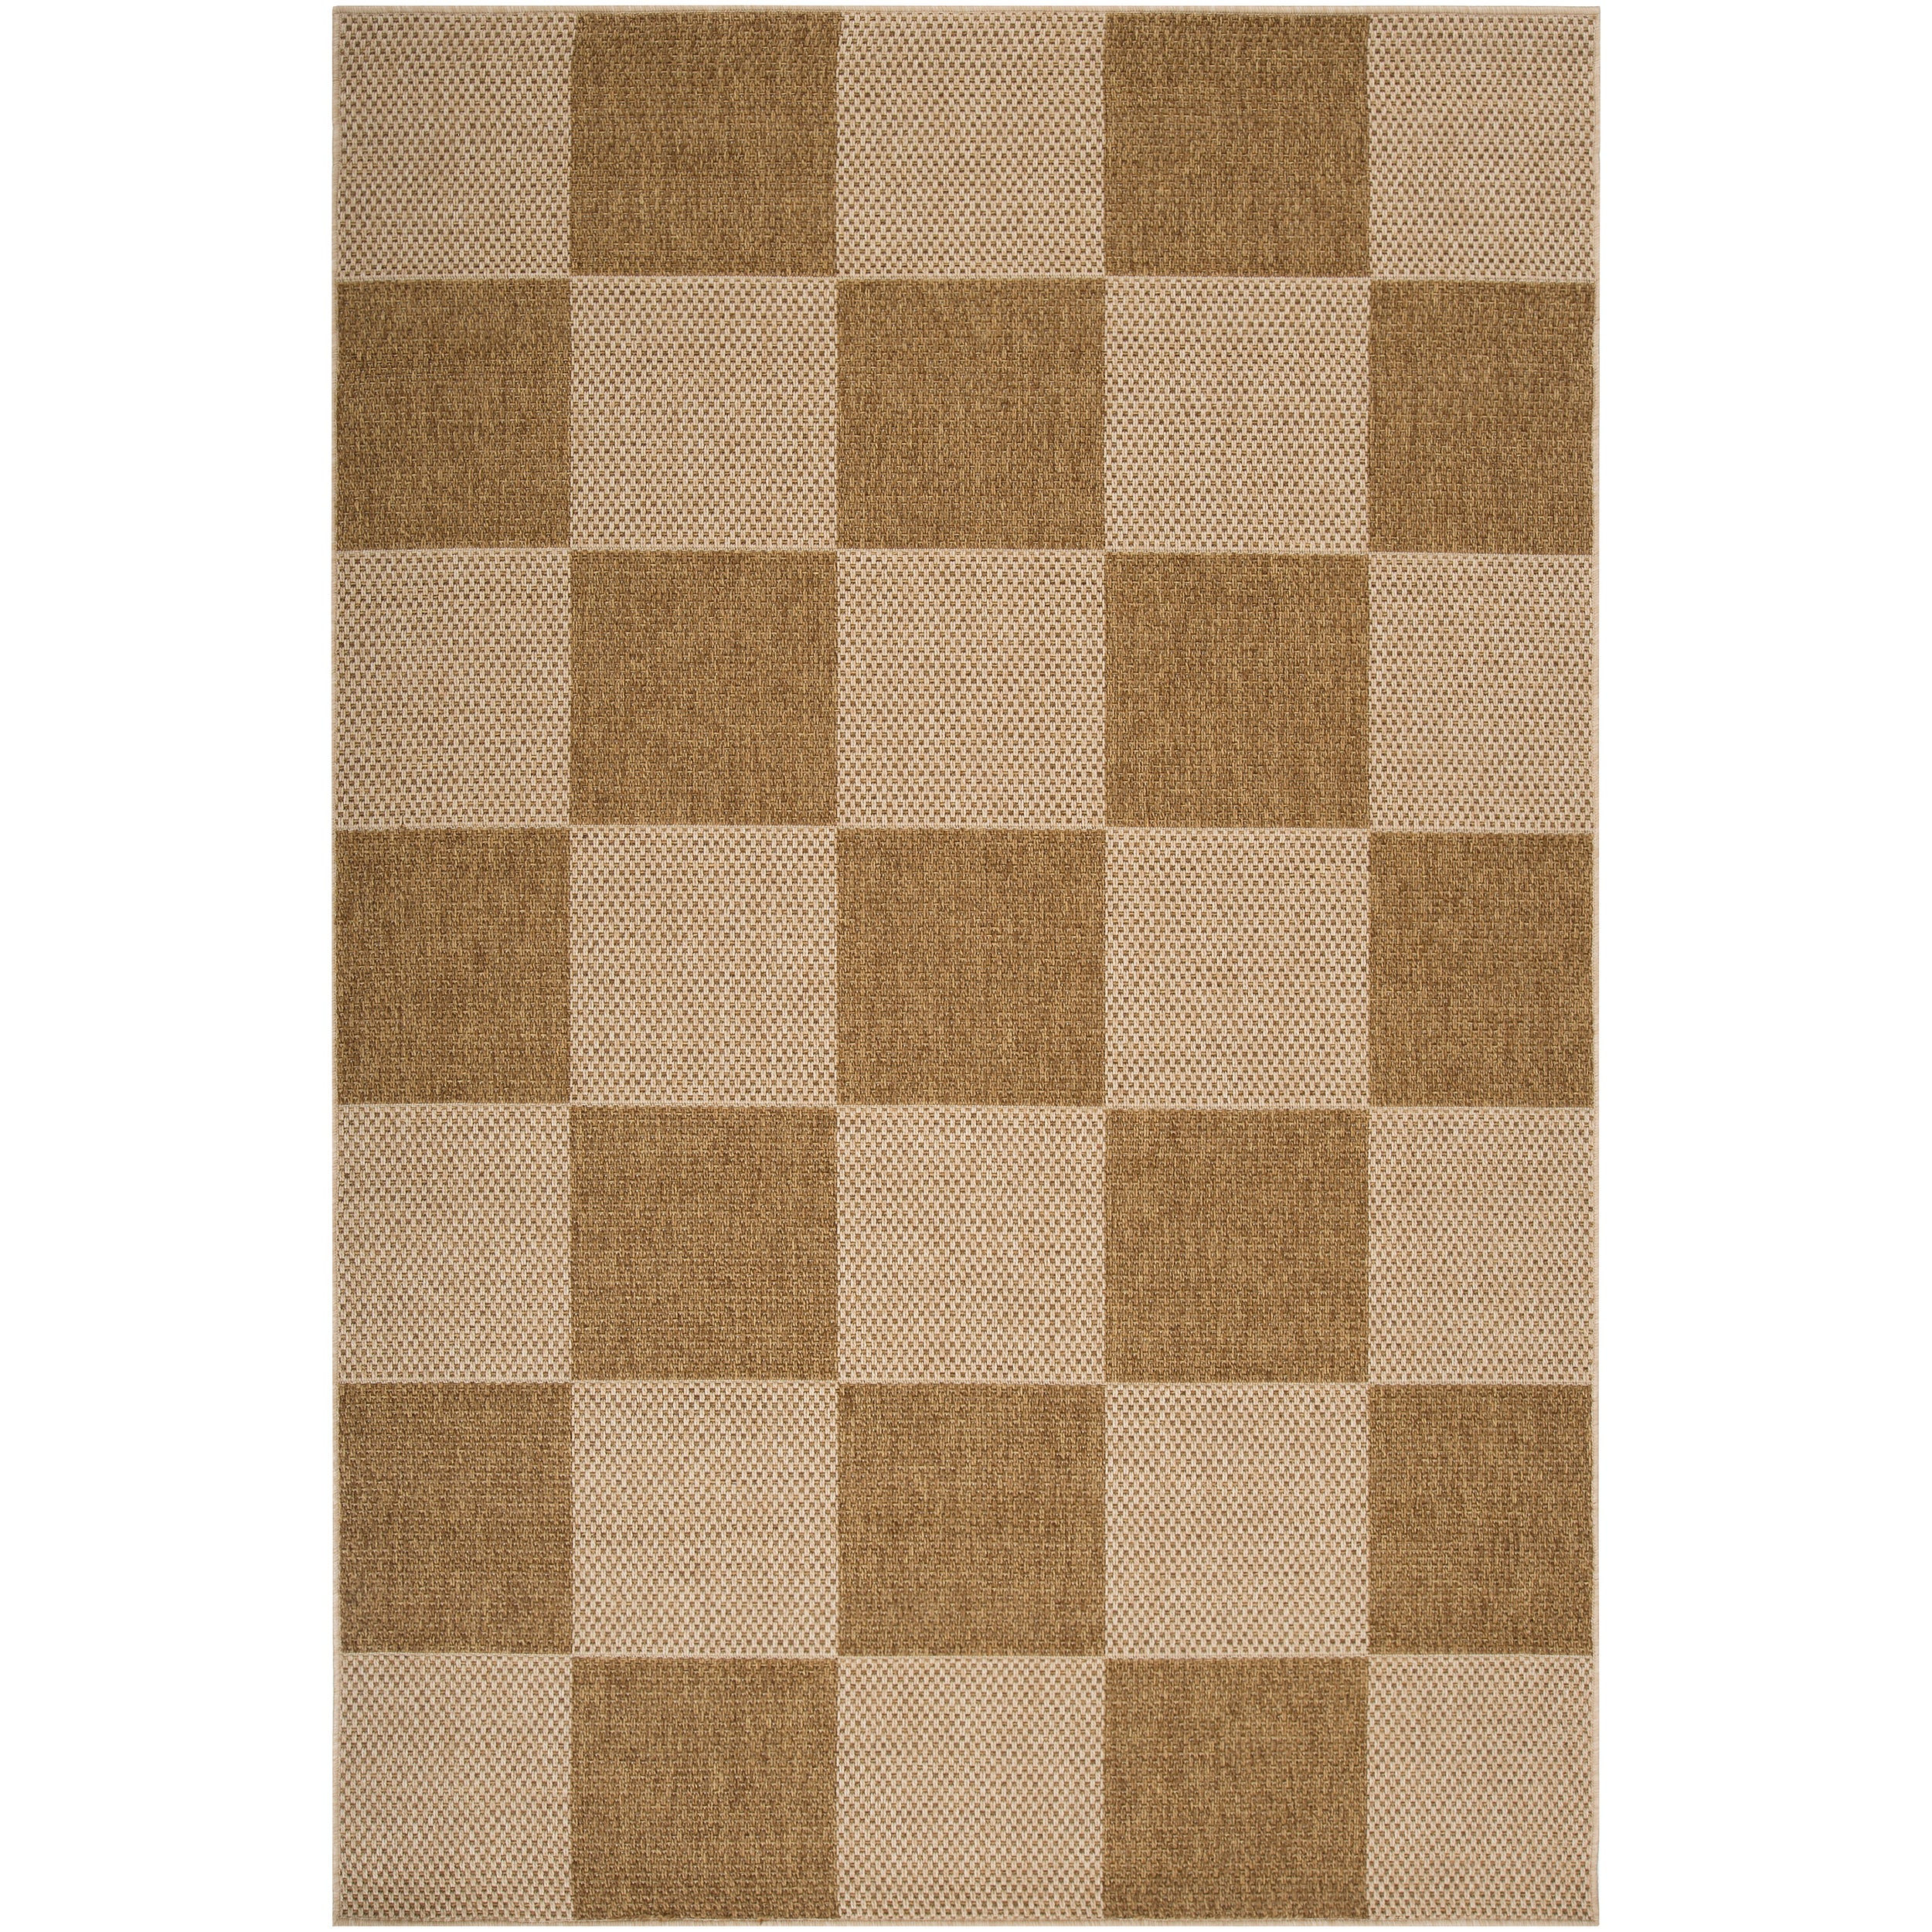 Checkerboard Rug Game Area Rug Ideas